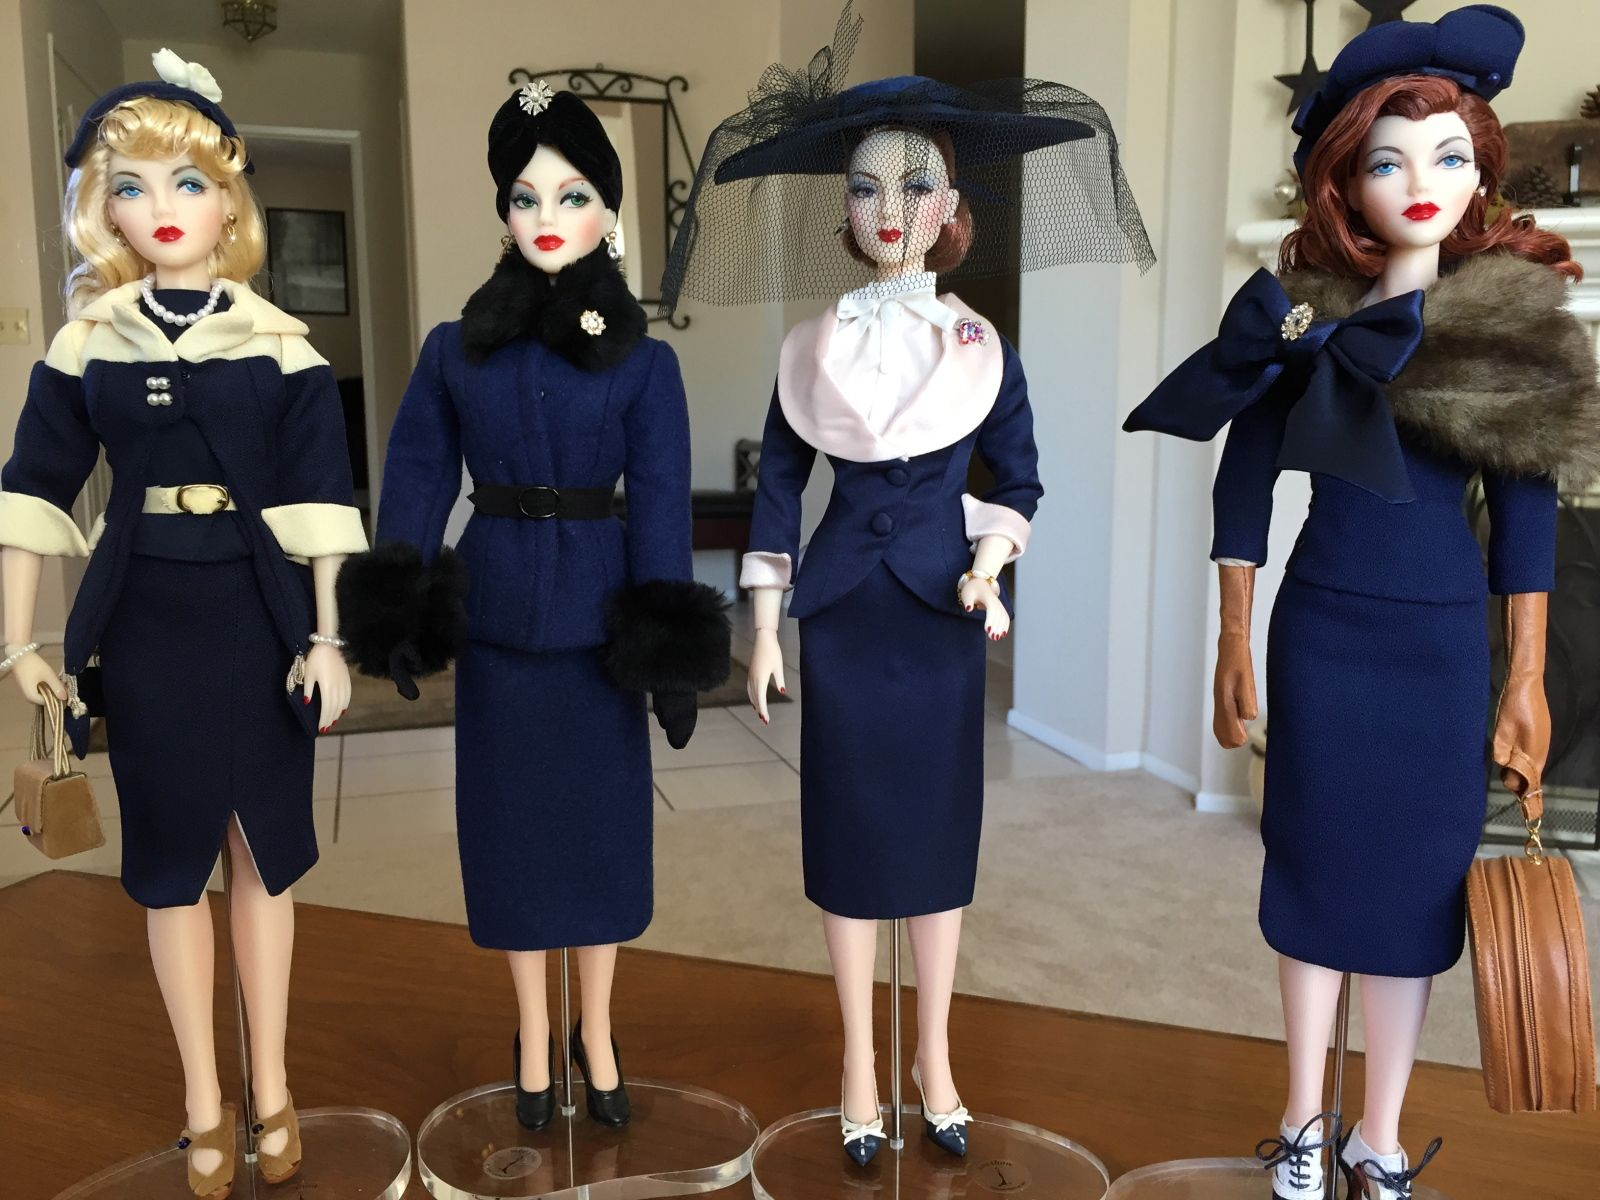 THE STUDIO COMMISSARY: Some of the girls dressed in navy to welcome Zita.